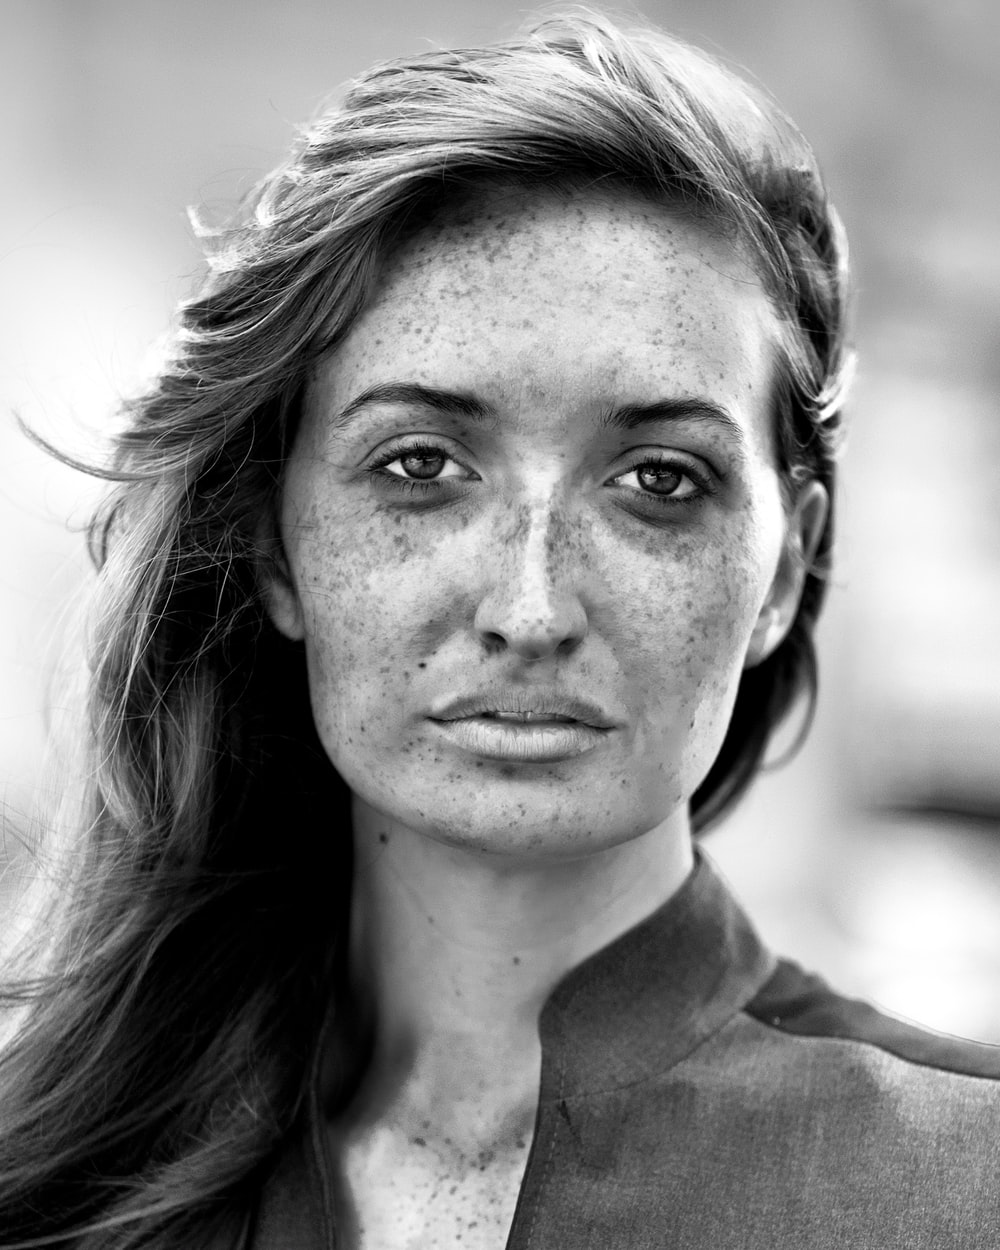 grayscale portrait photo of woman